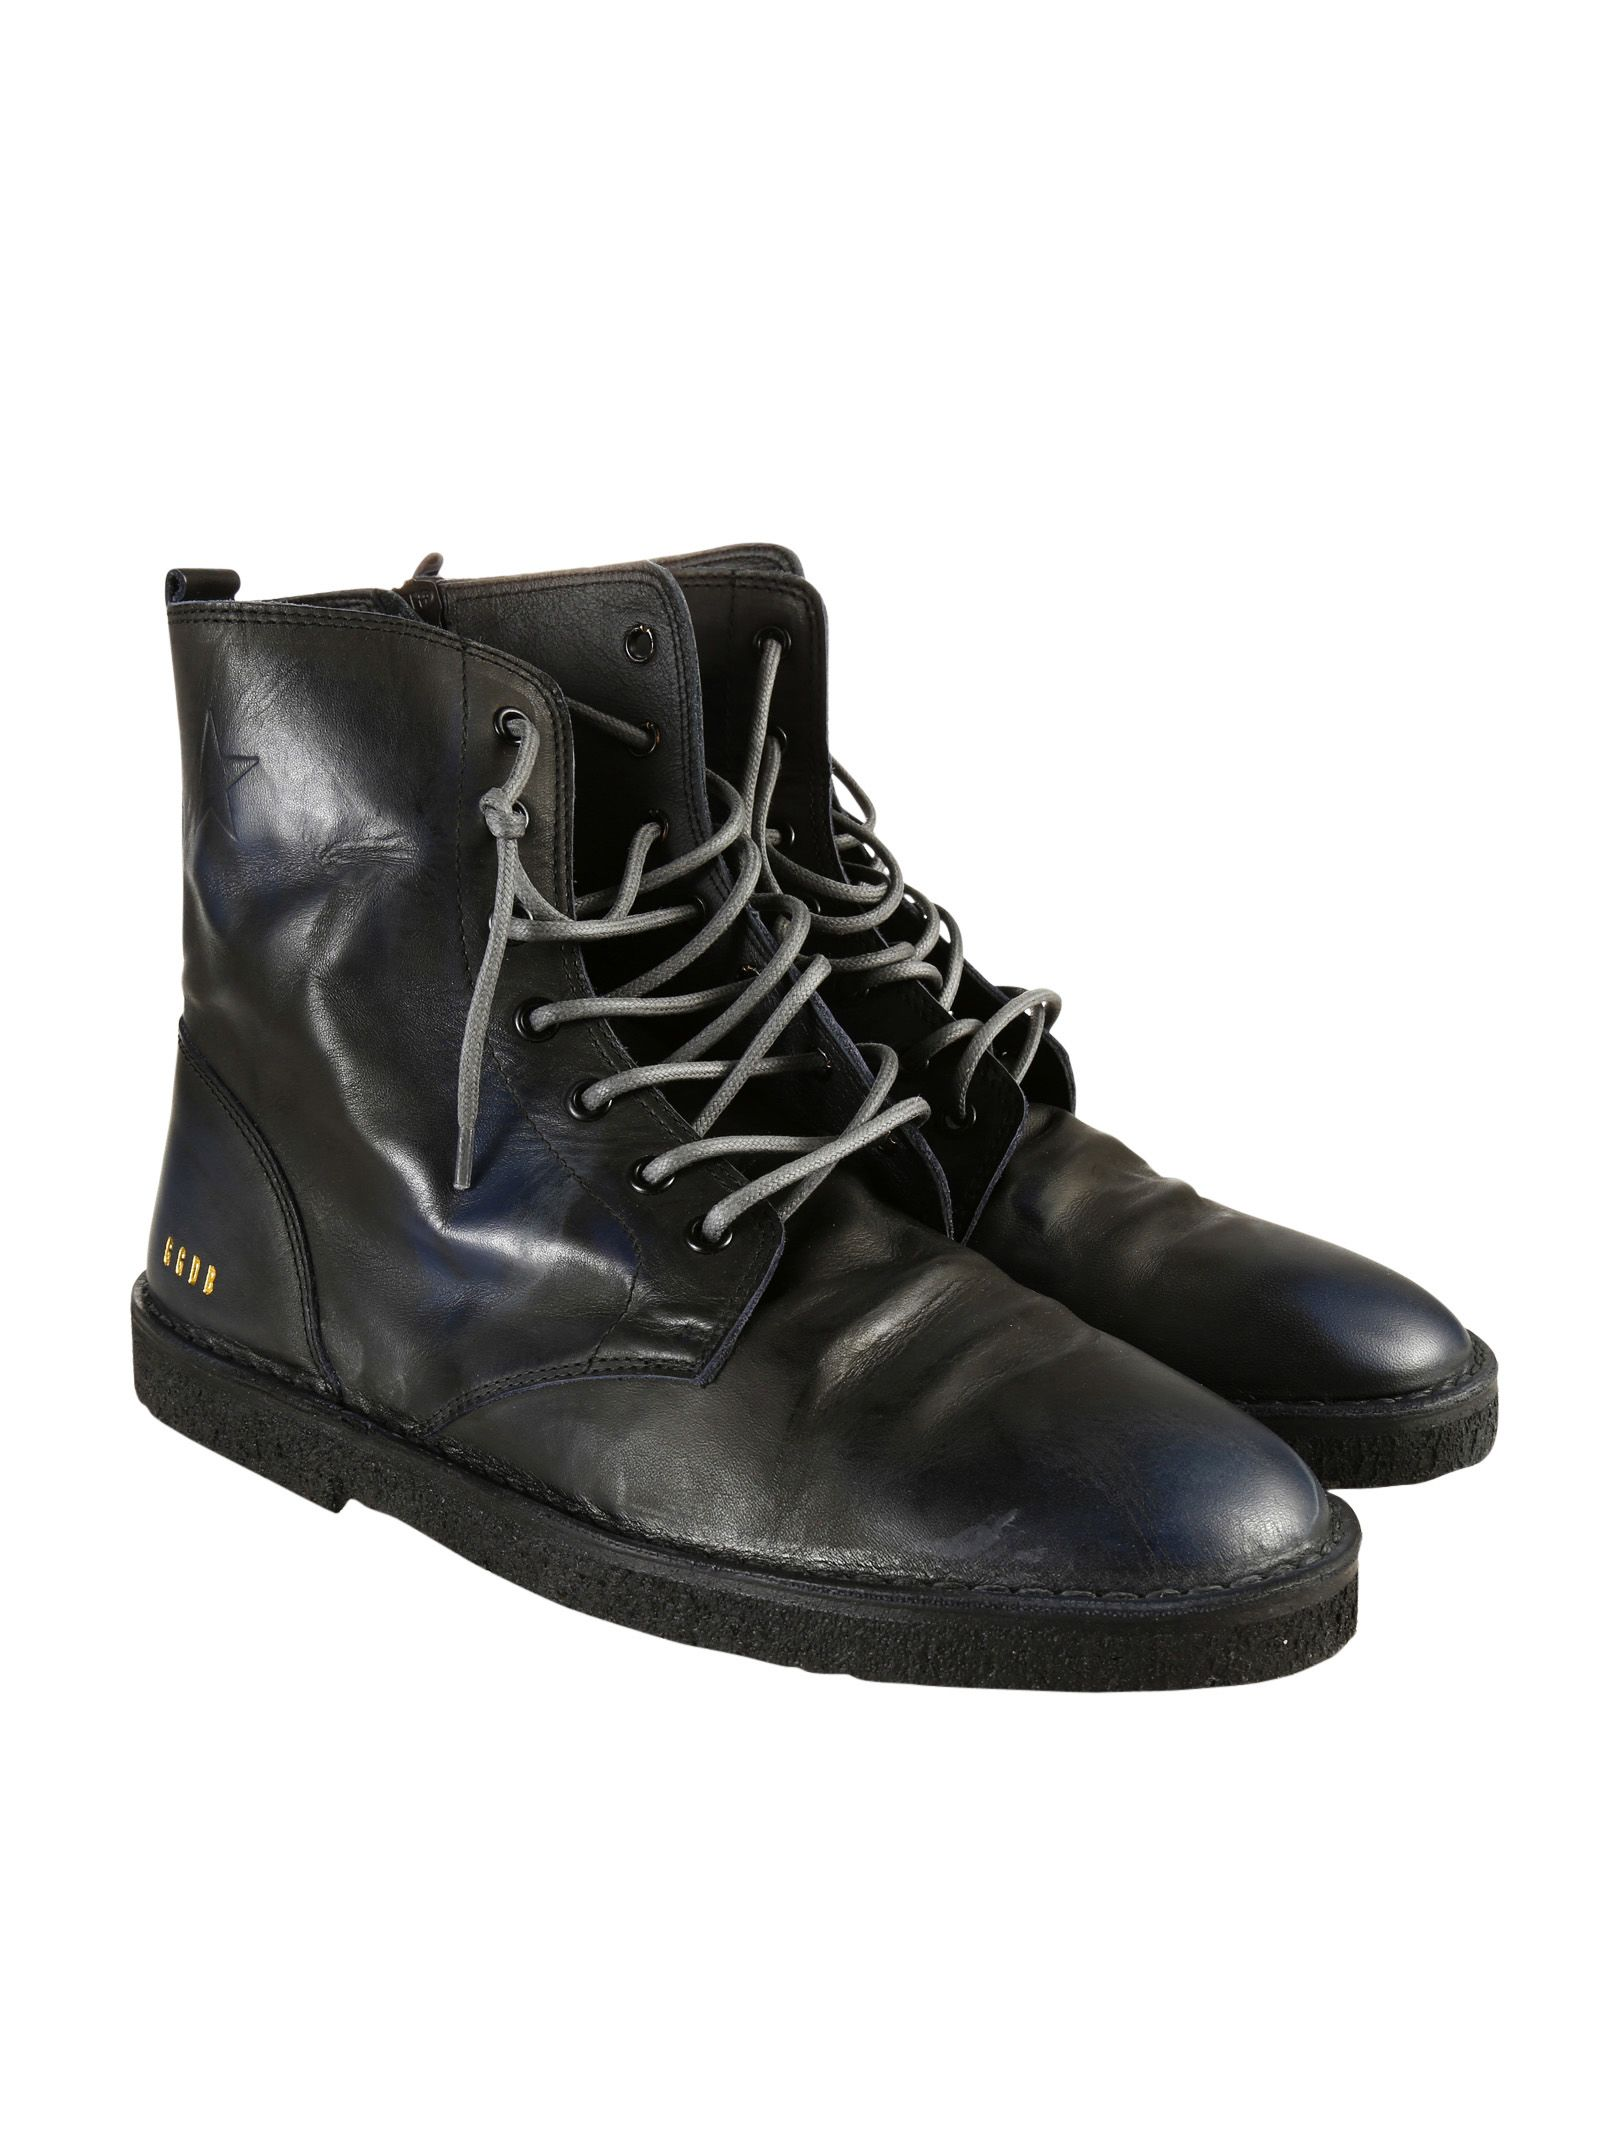 golden goose golden goose deluxe brand black leather